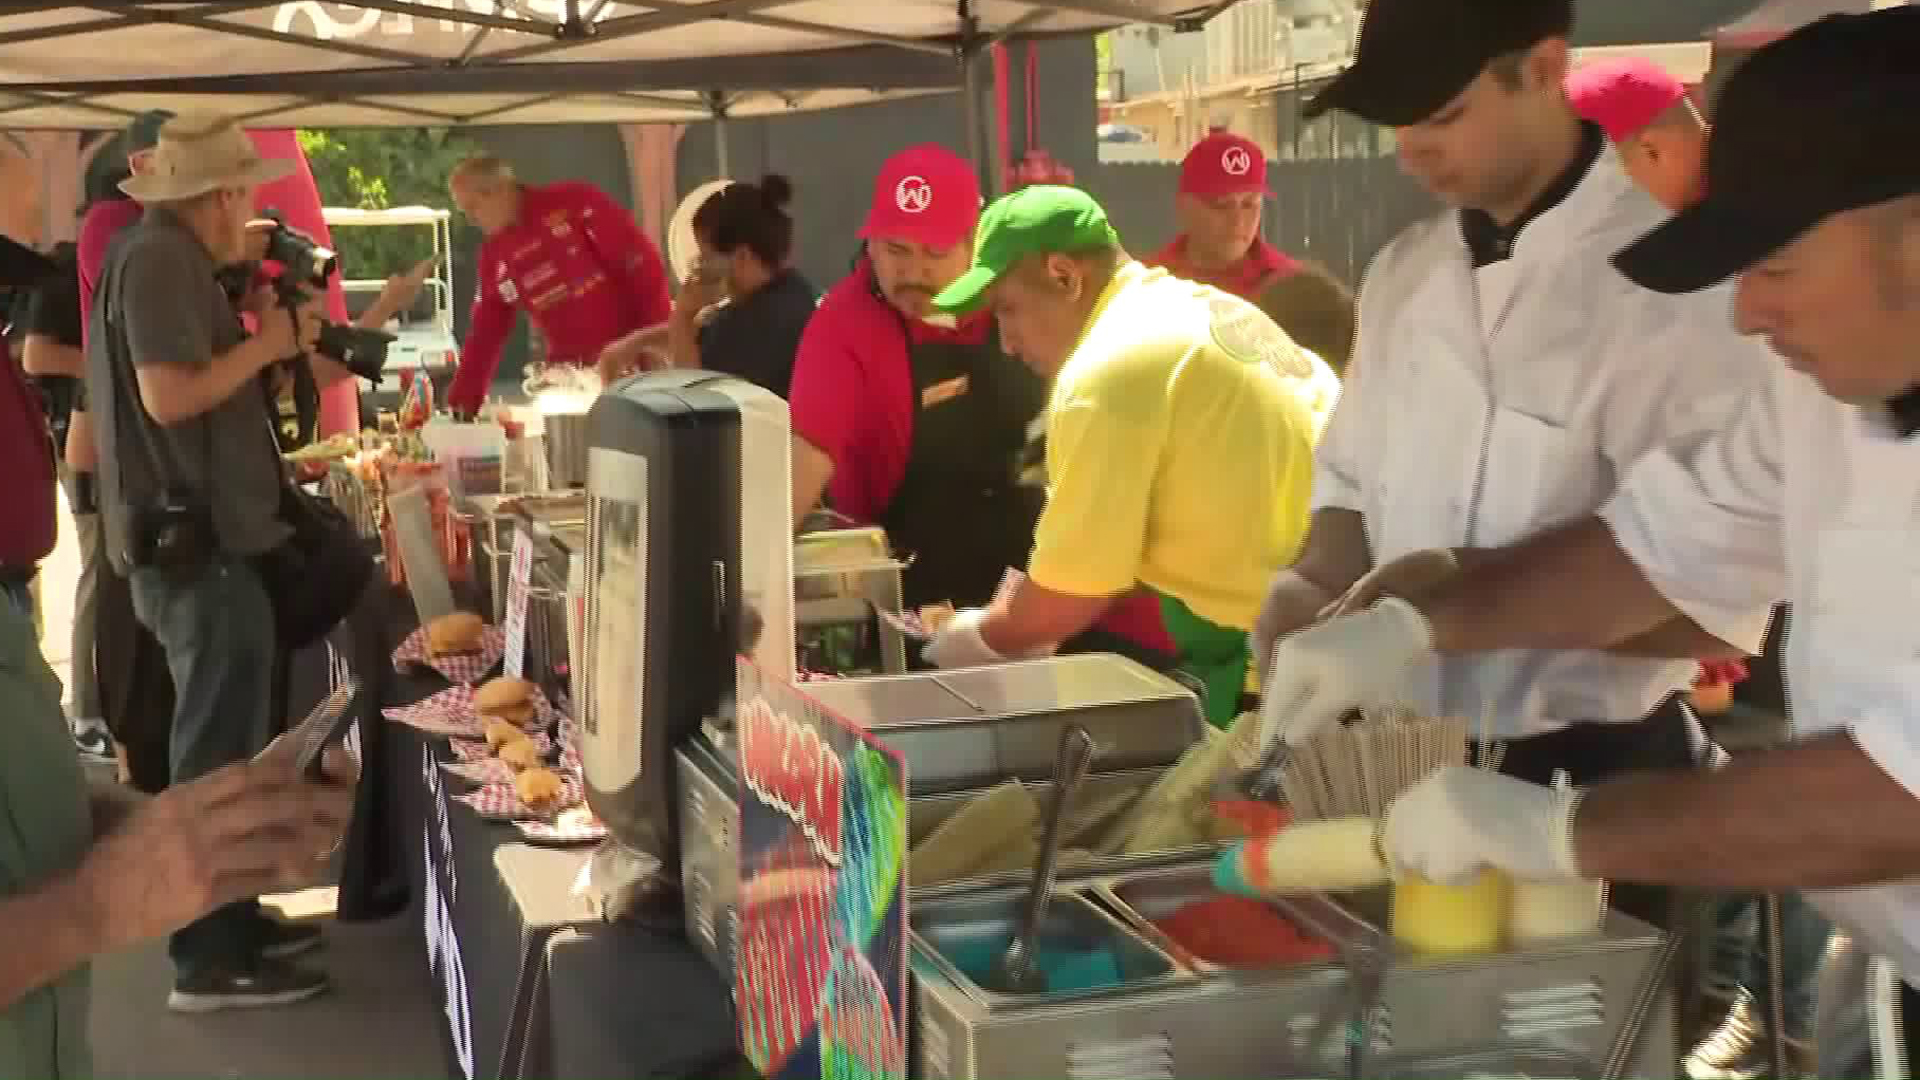 Vendors show off their food offerings ahead of the L.A. County Fair on Aug. 28, 2019. (Credit: KTLA)